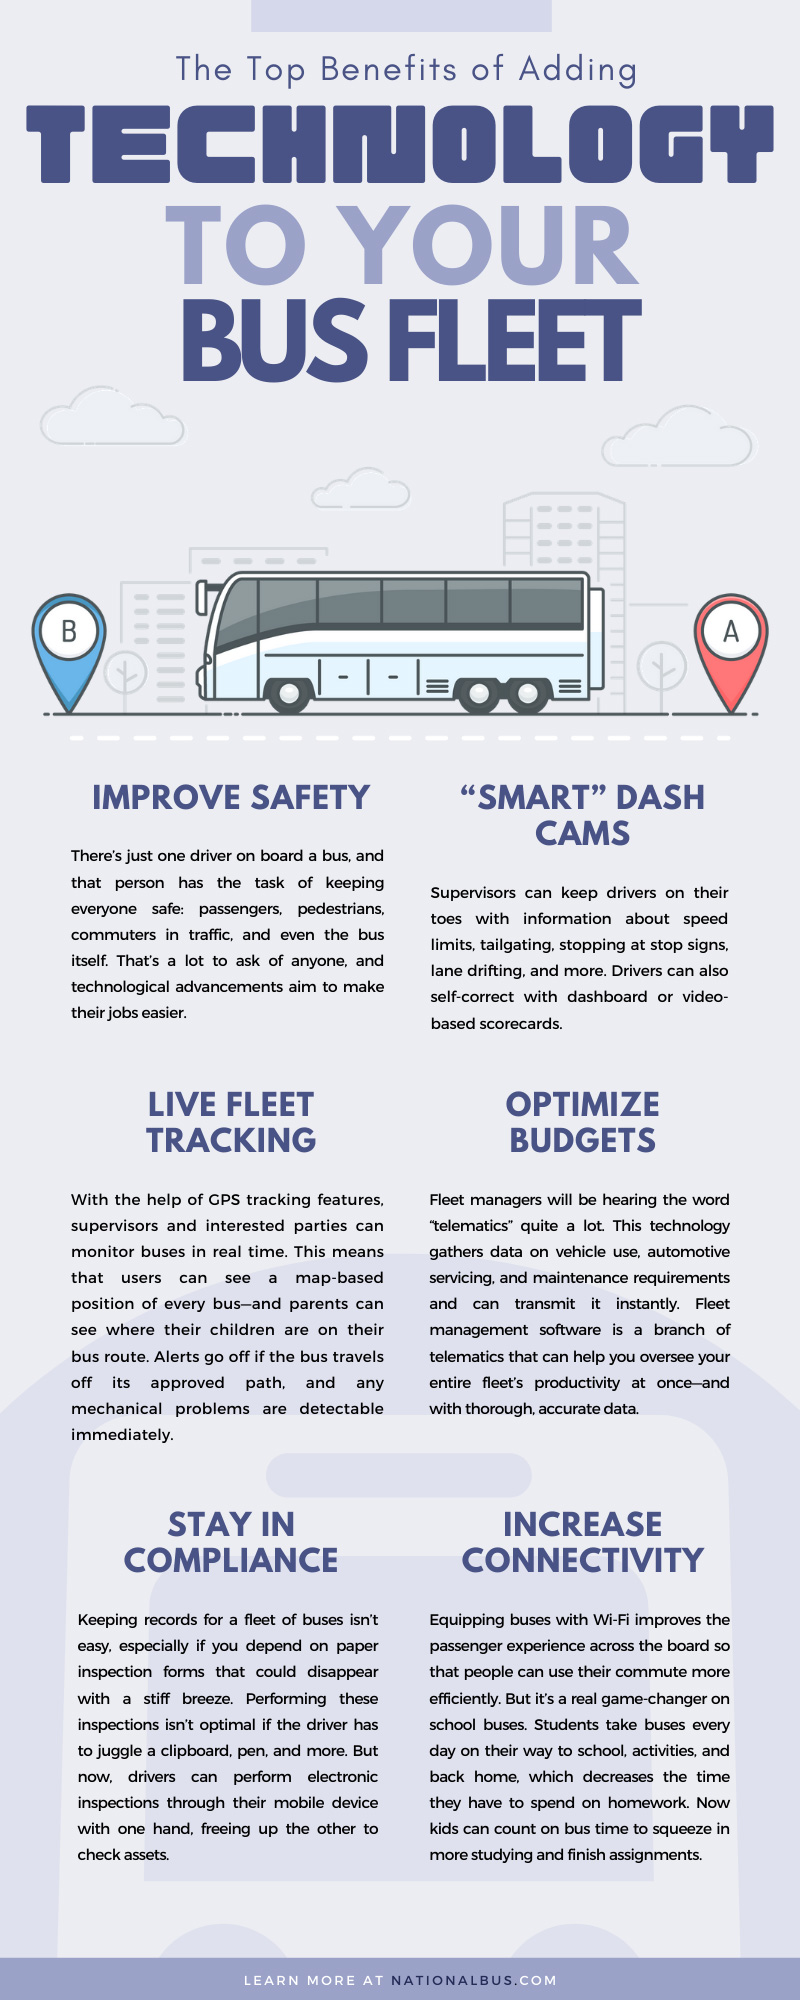 The Top Benefits of Adding Technology To Your Bus Fleet